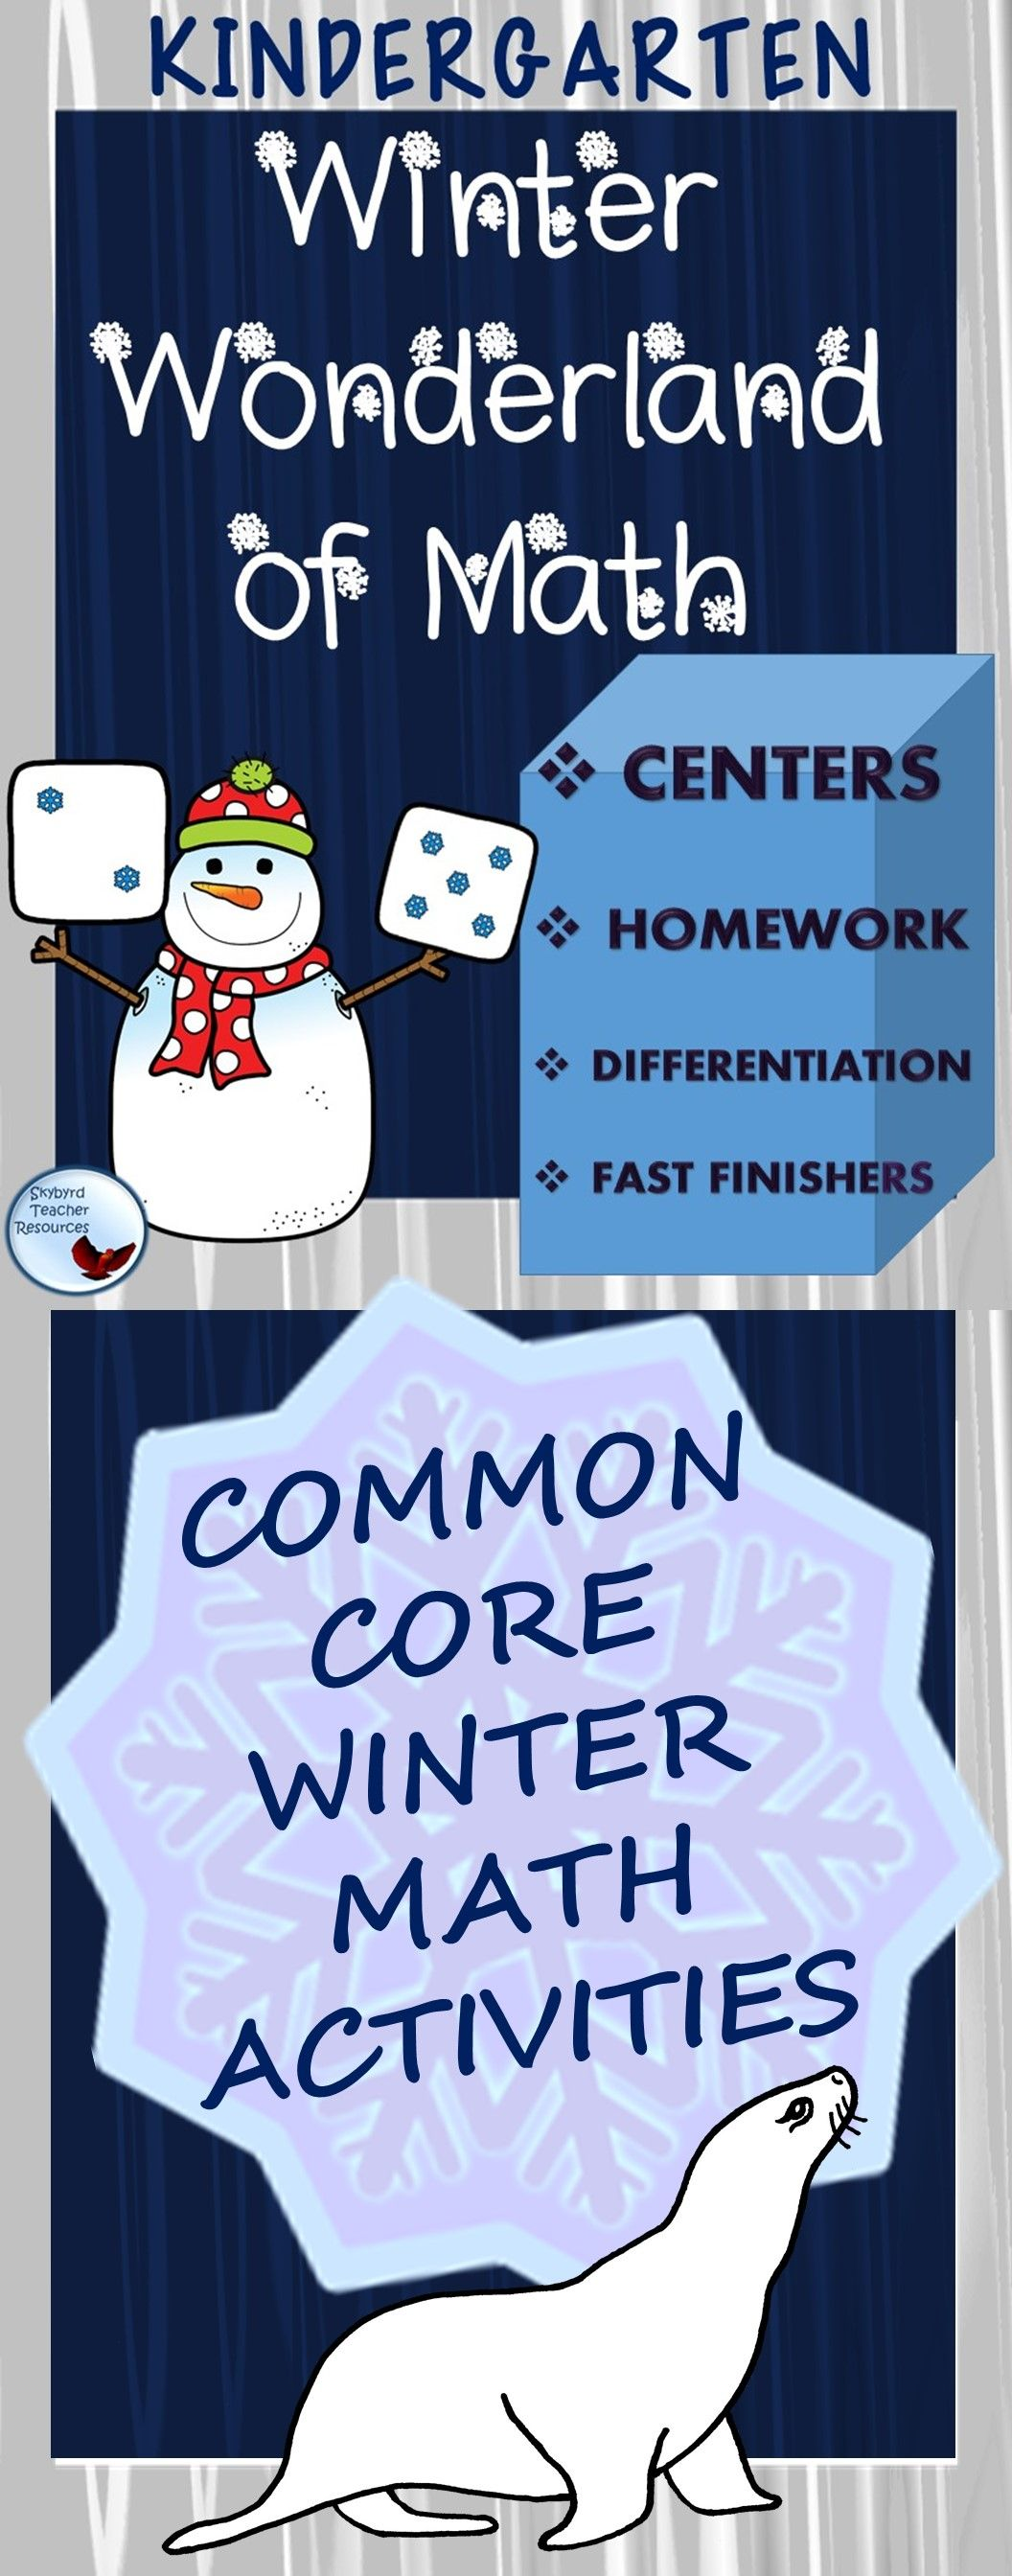 Math Kindergarten Winter Wonderland Math Activities And